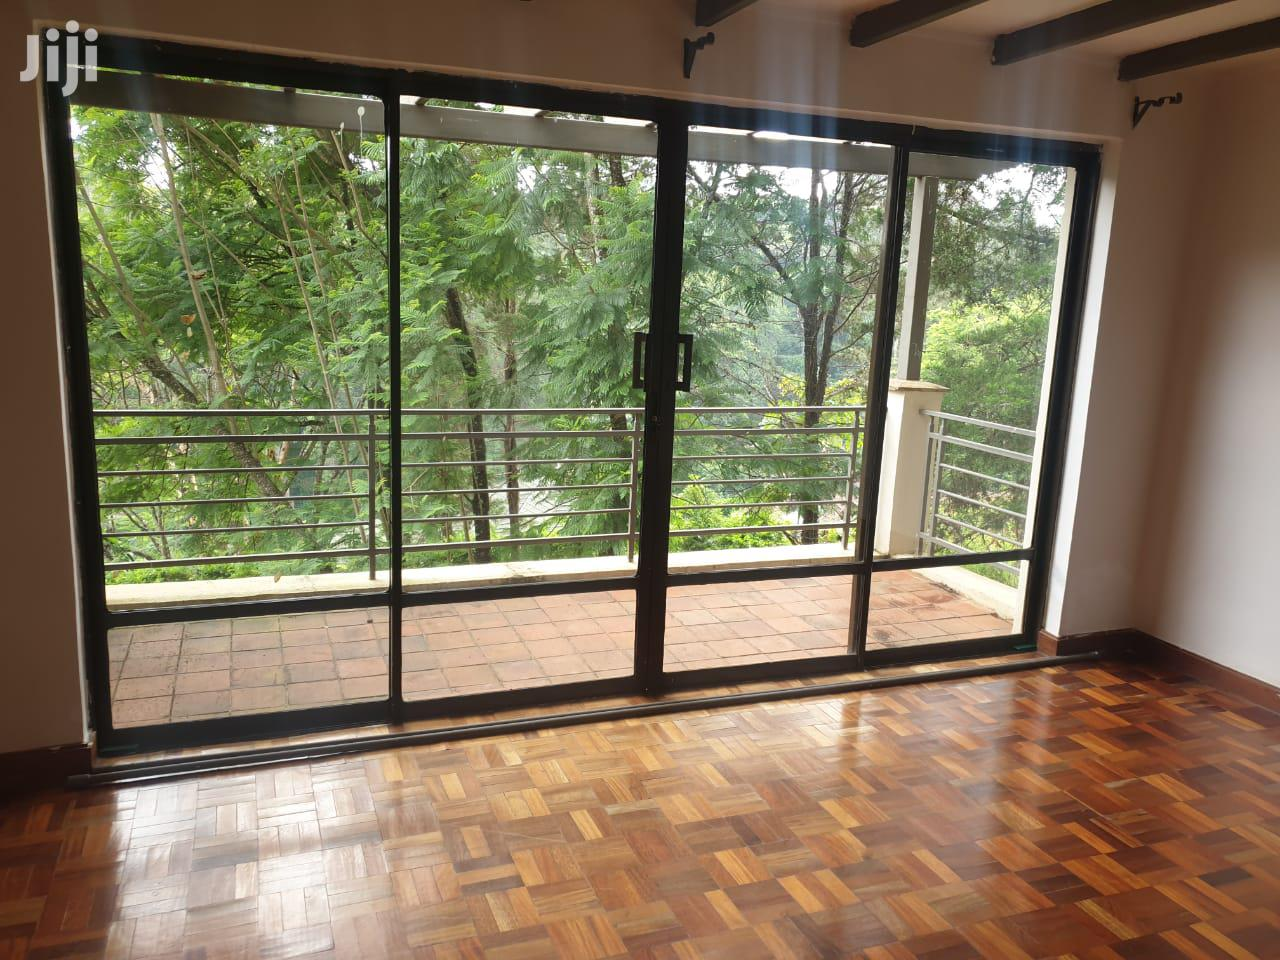 You Cant Miss This One! Kitisuru Five Bedroom Townhouse.